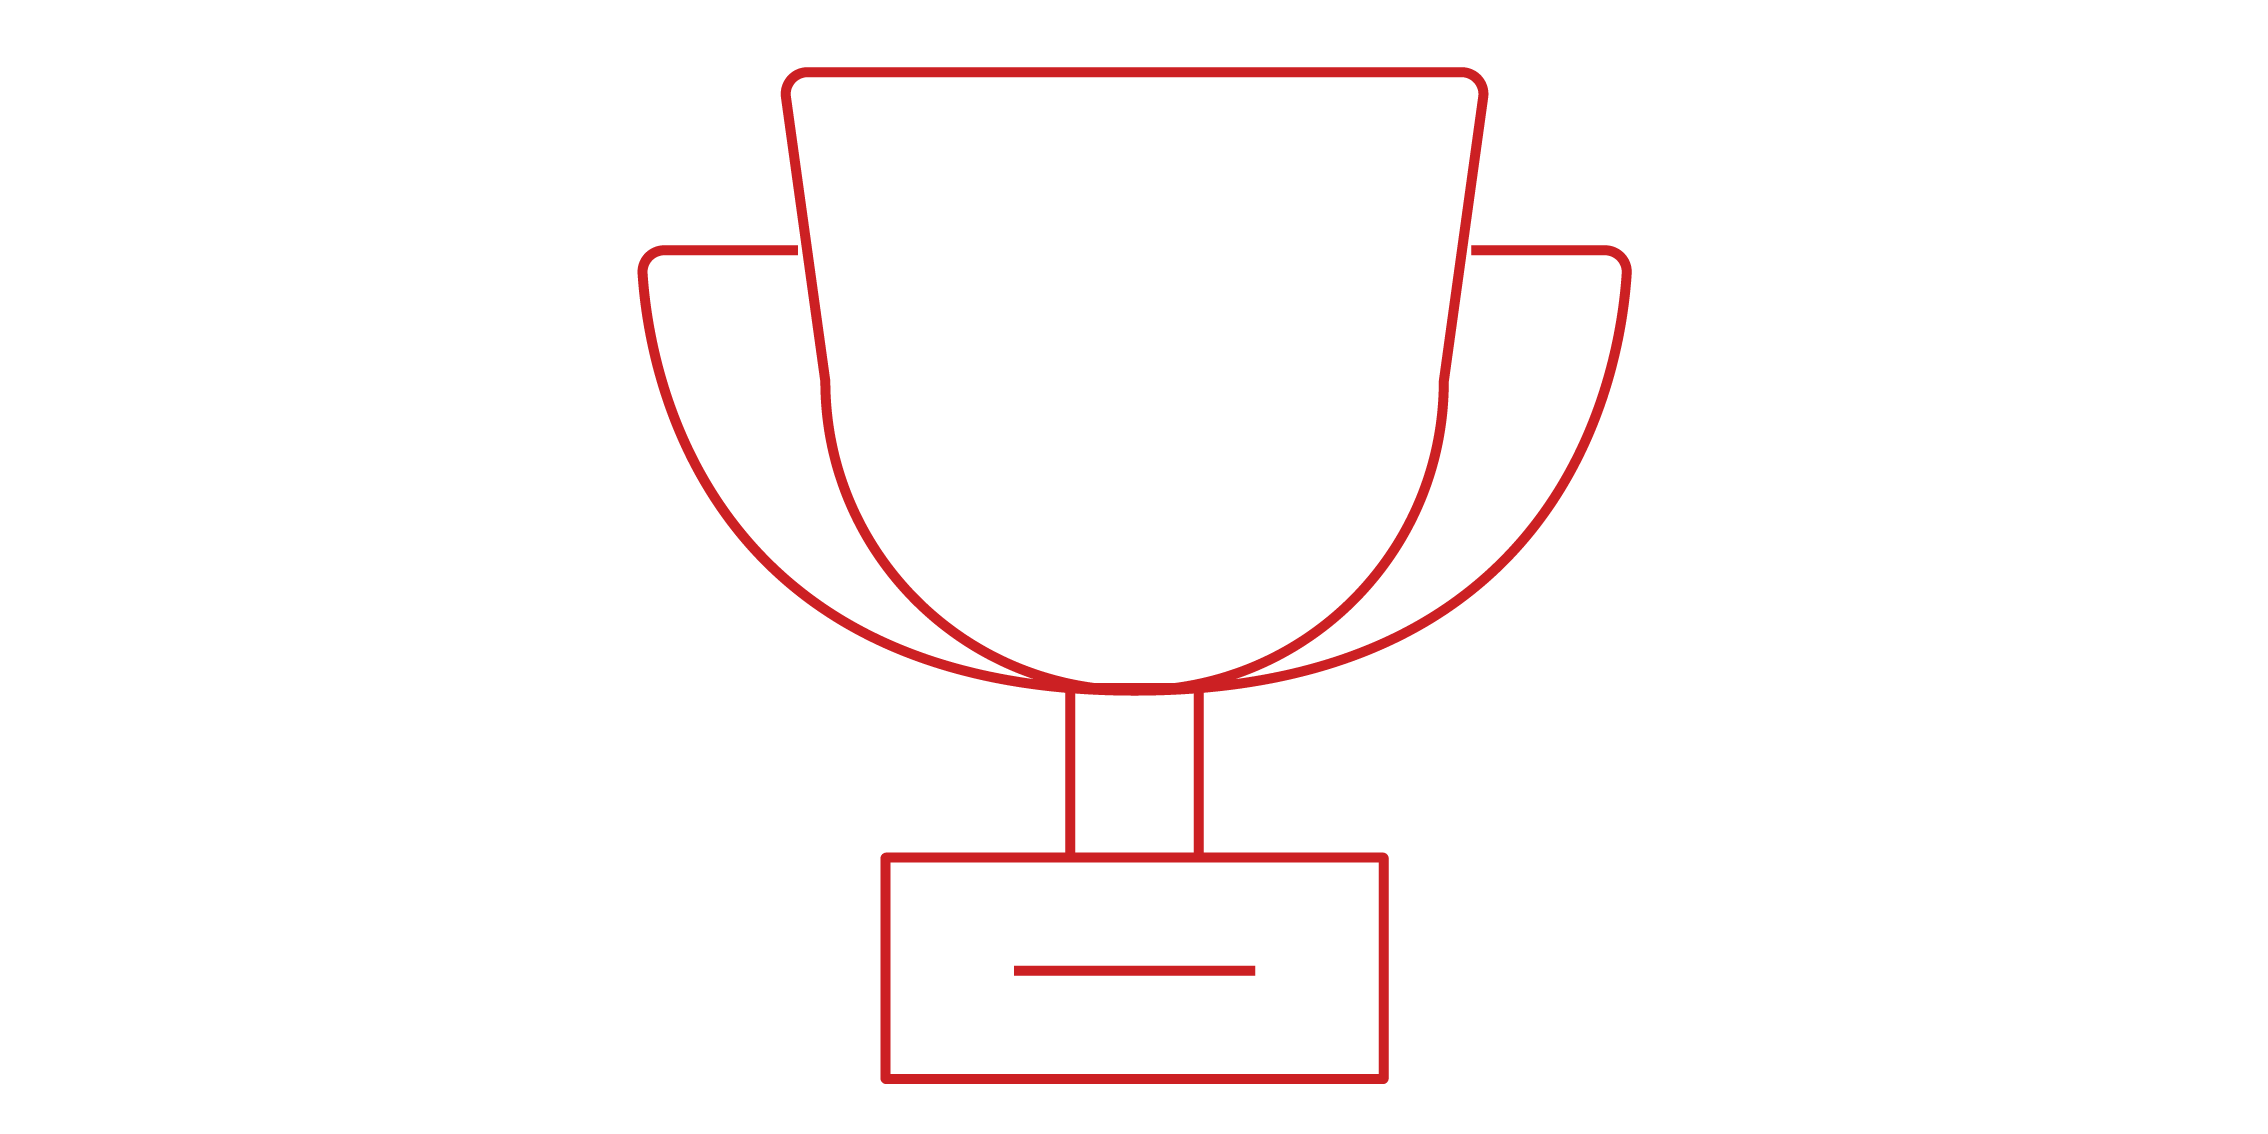 Make Your Mark - Winners receive an exclusive trophy and certificate presented during the awards ceremony.